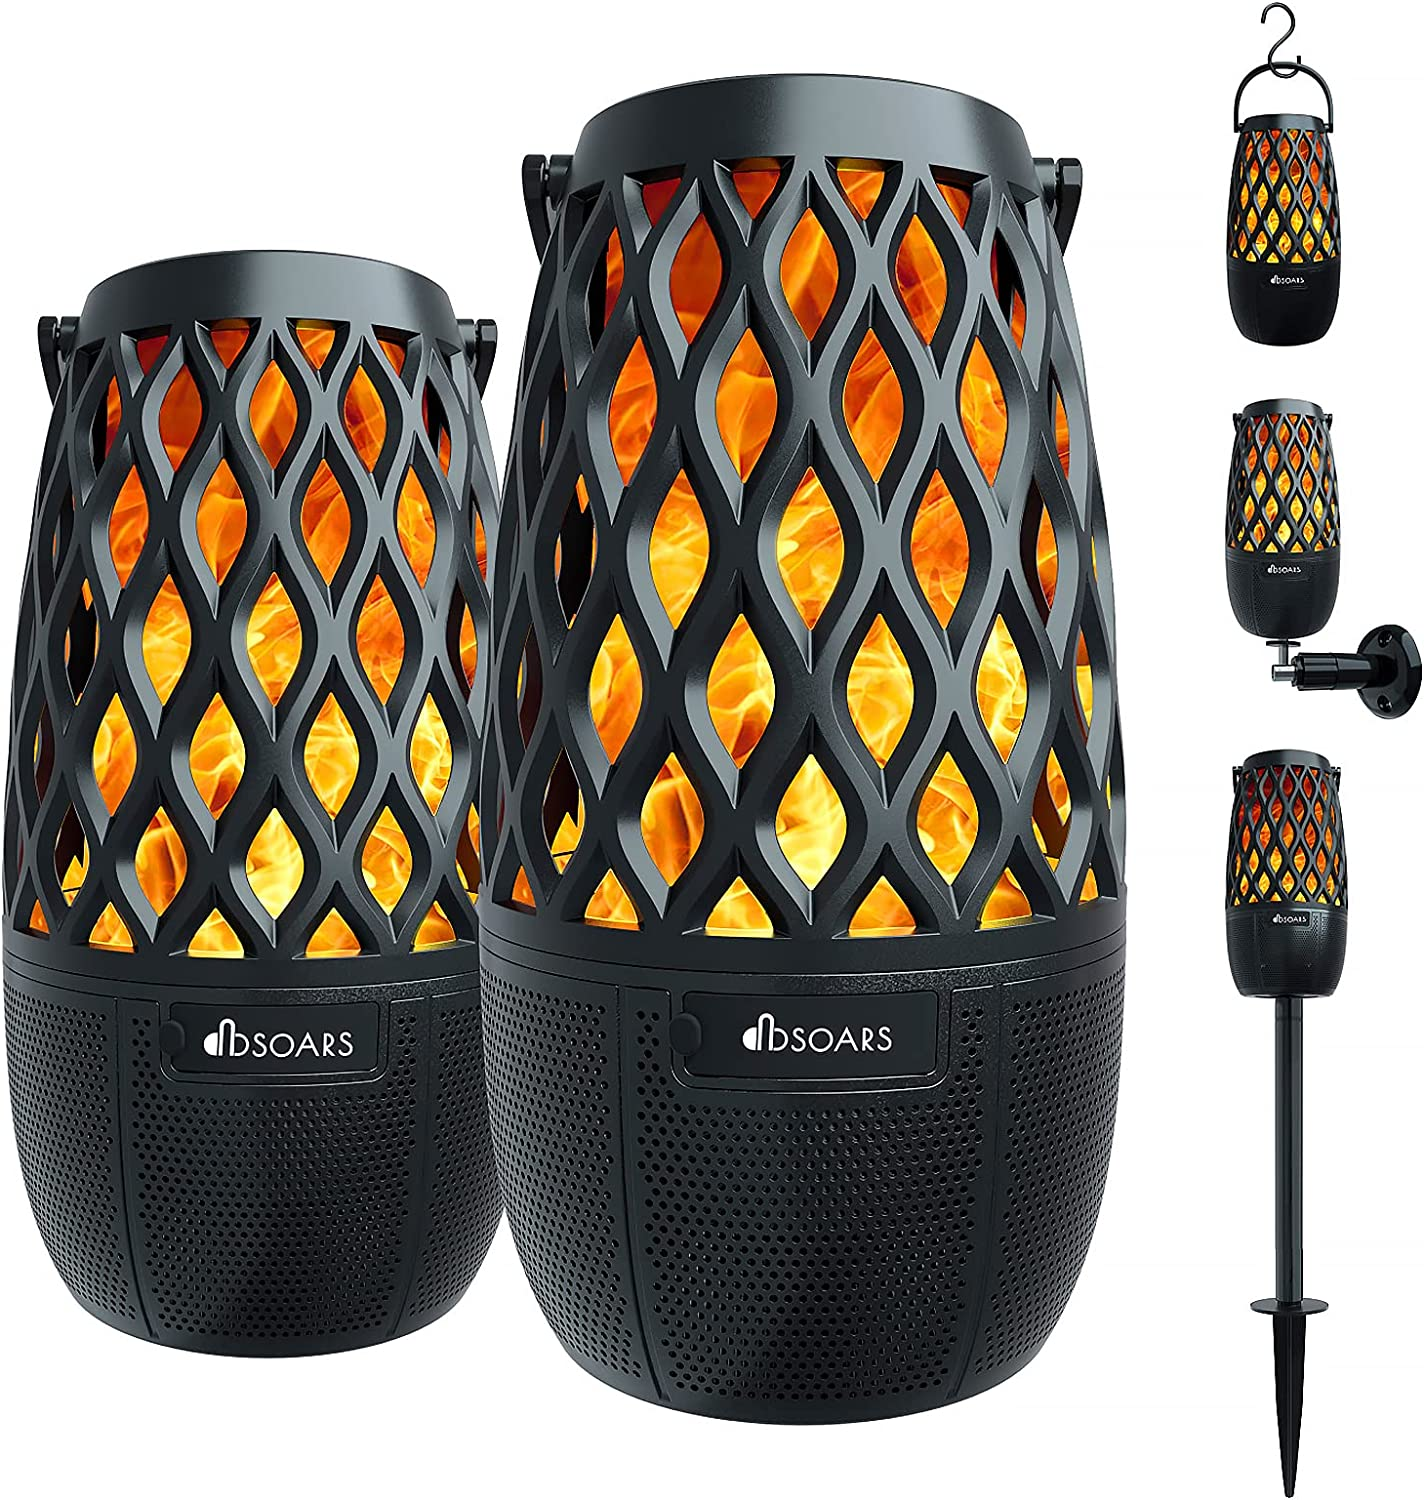 DBSOARS Torch Light Bluetooth Speaker, Outdoor/Indoor LED Flame Atmosphere